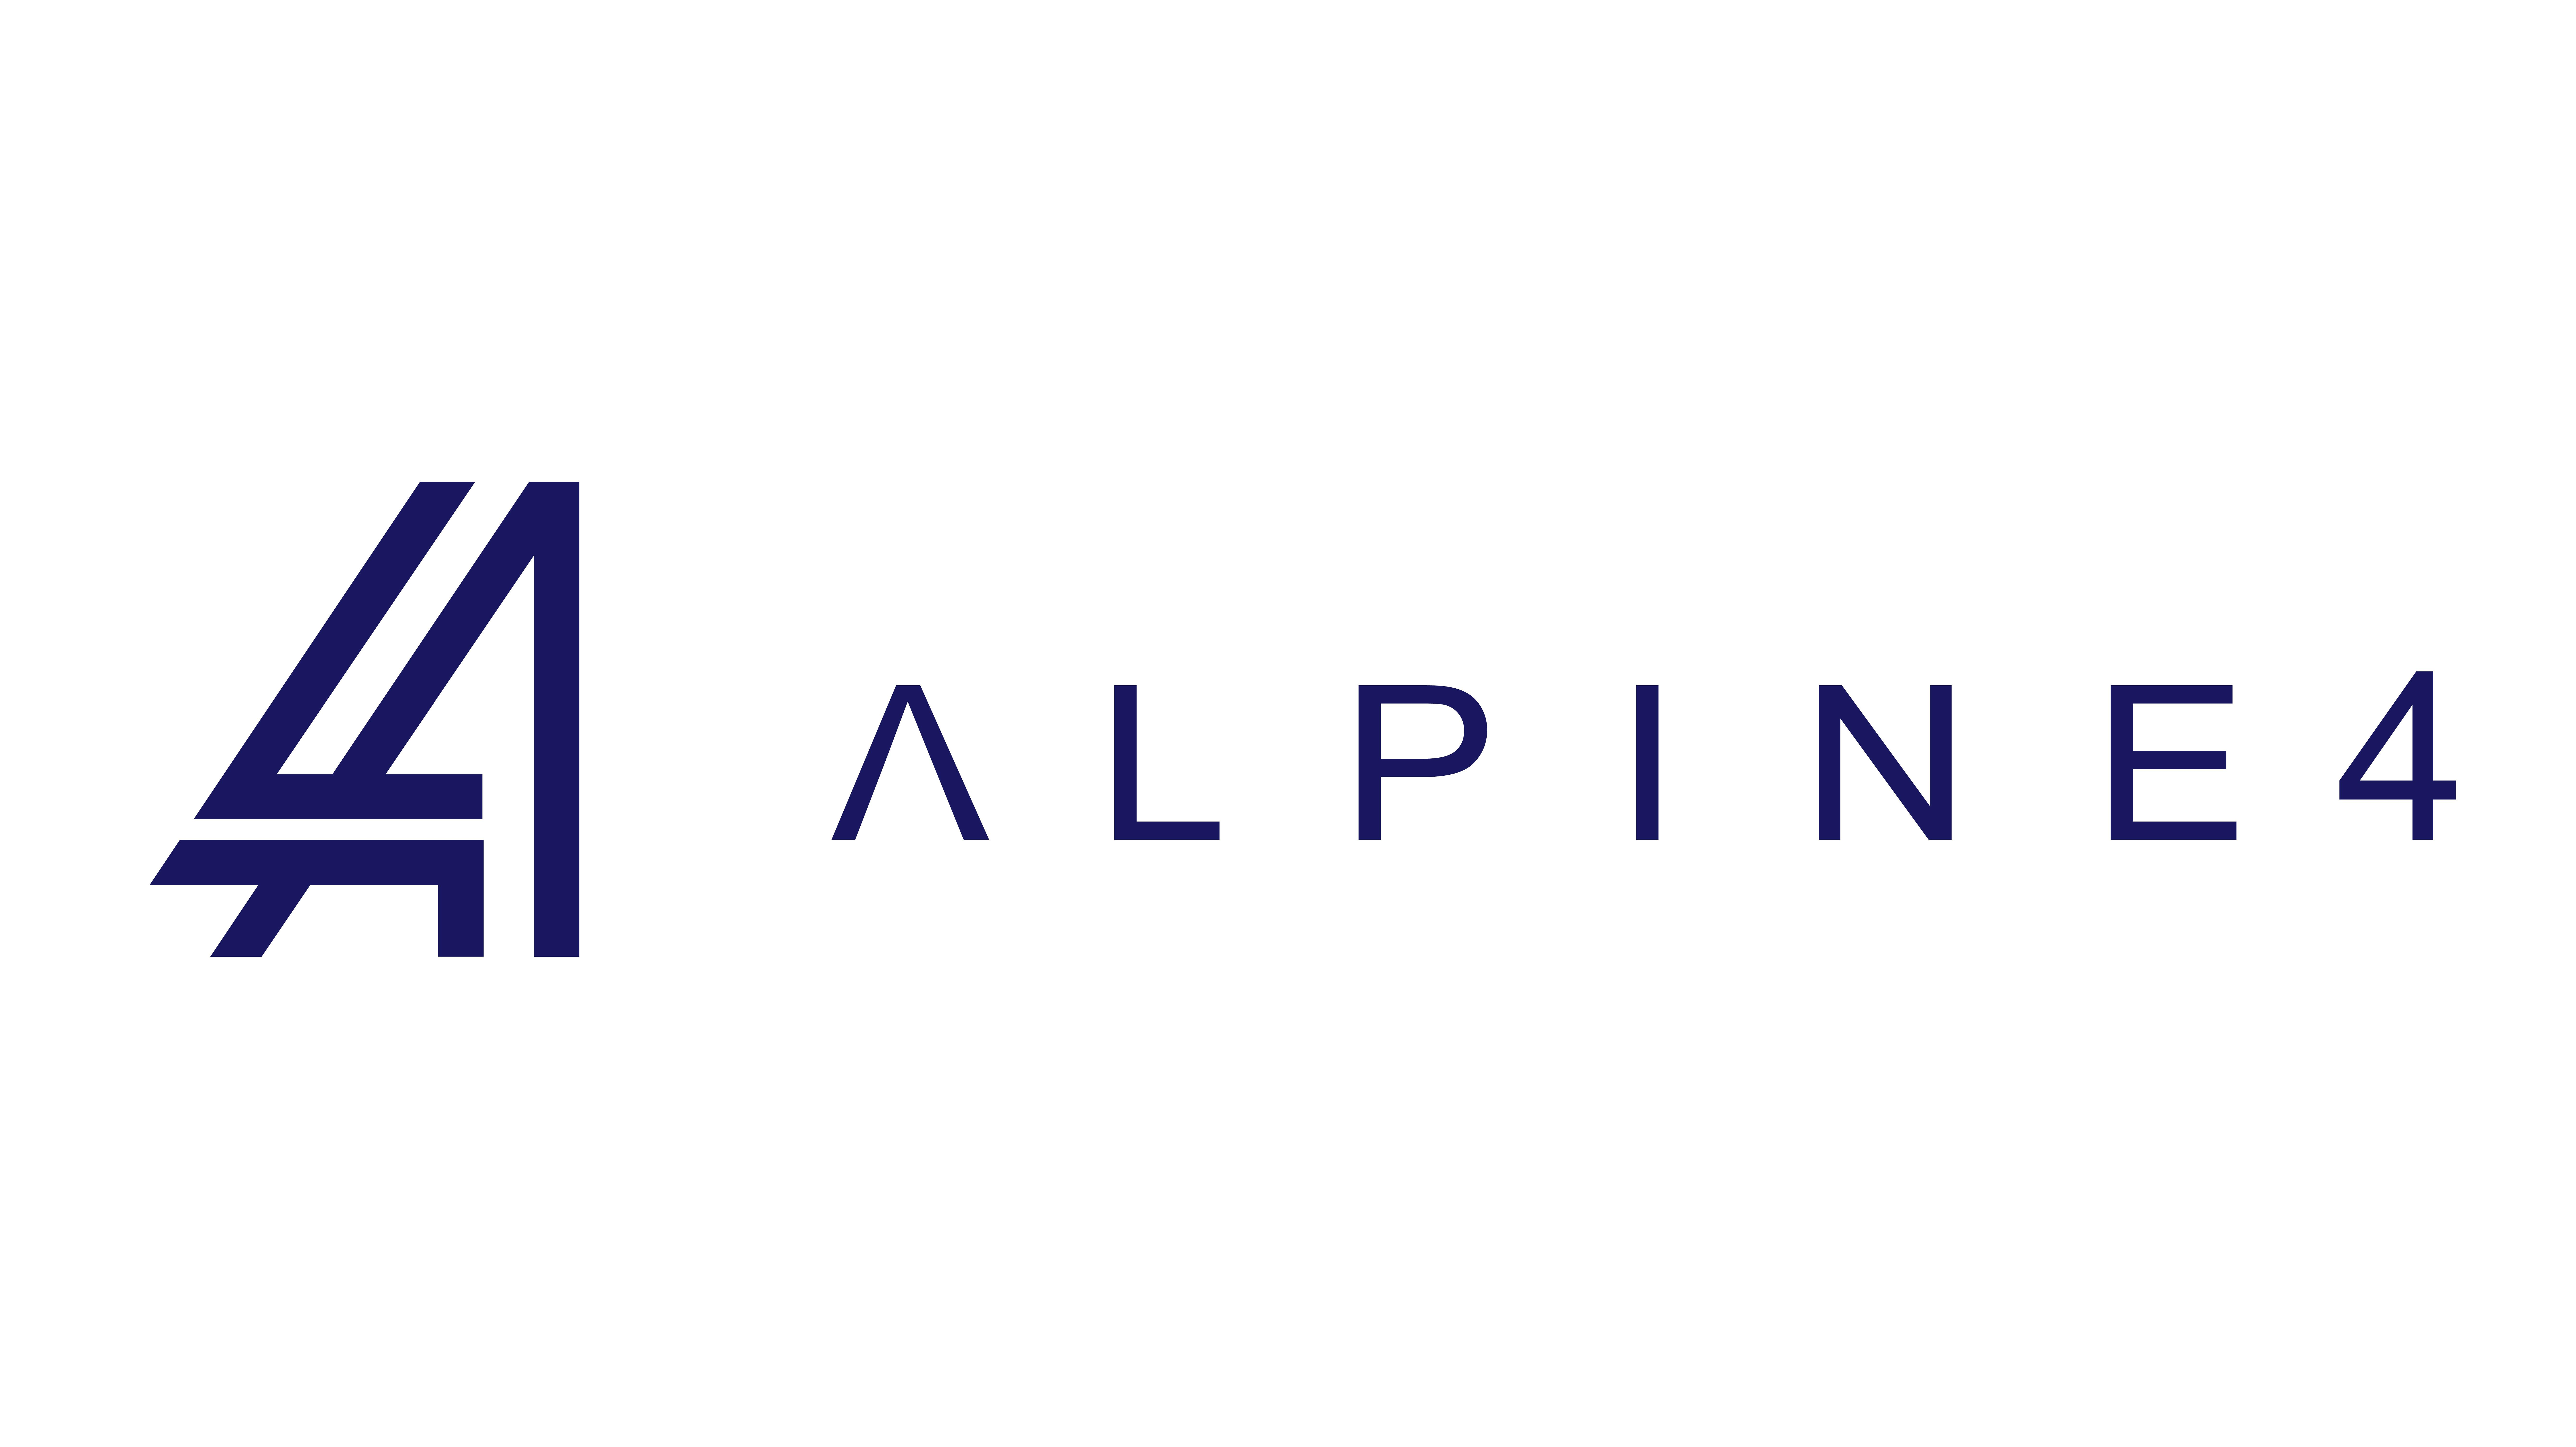 Alpine 4 Holdings, Inc. (ALPP) Introduces its 4 New Independent Board Members for the NASDAQ